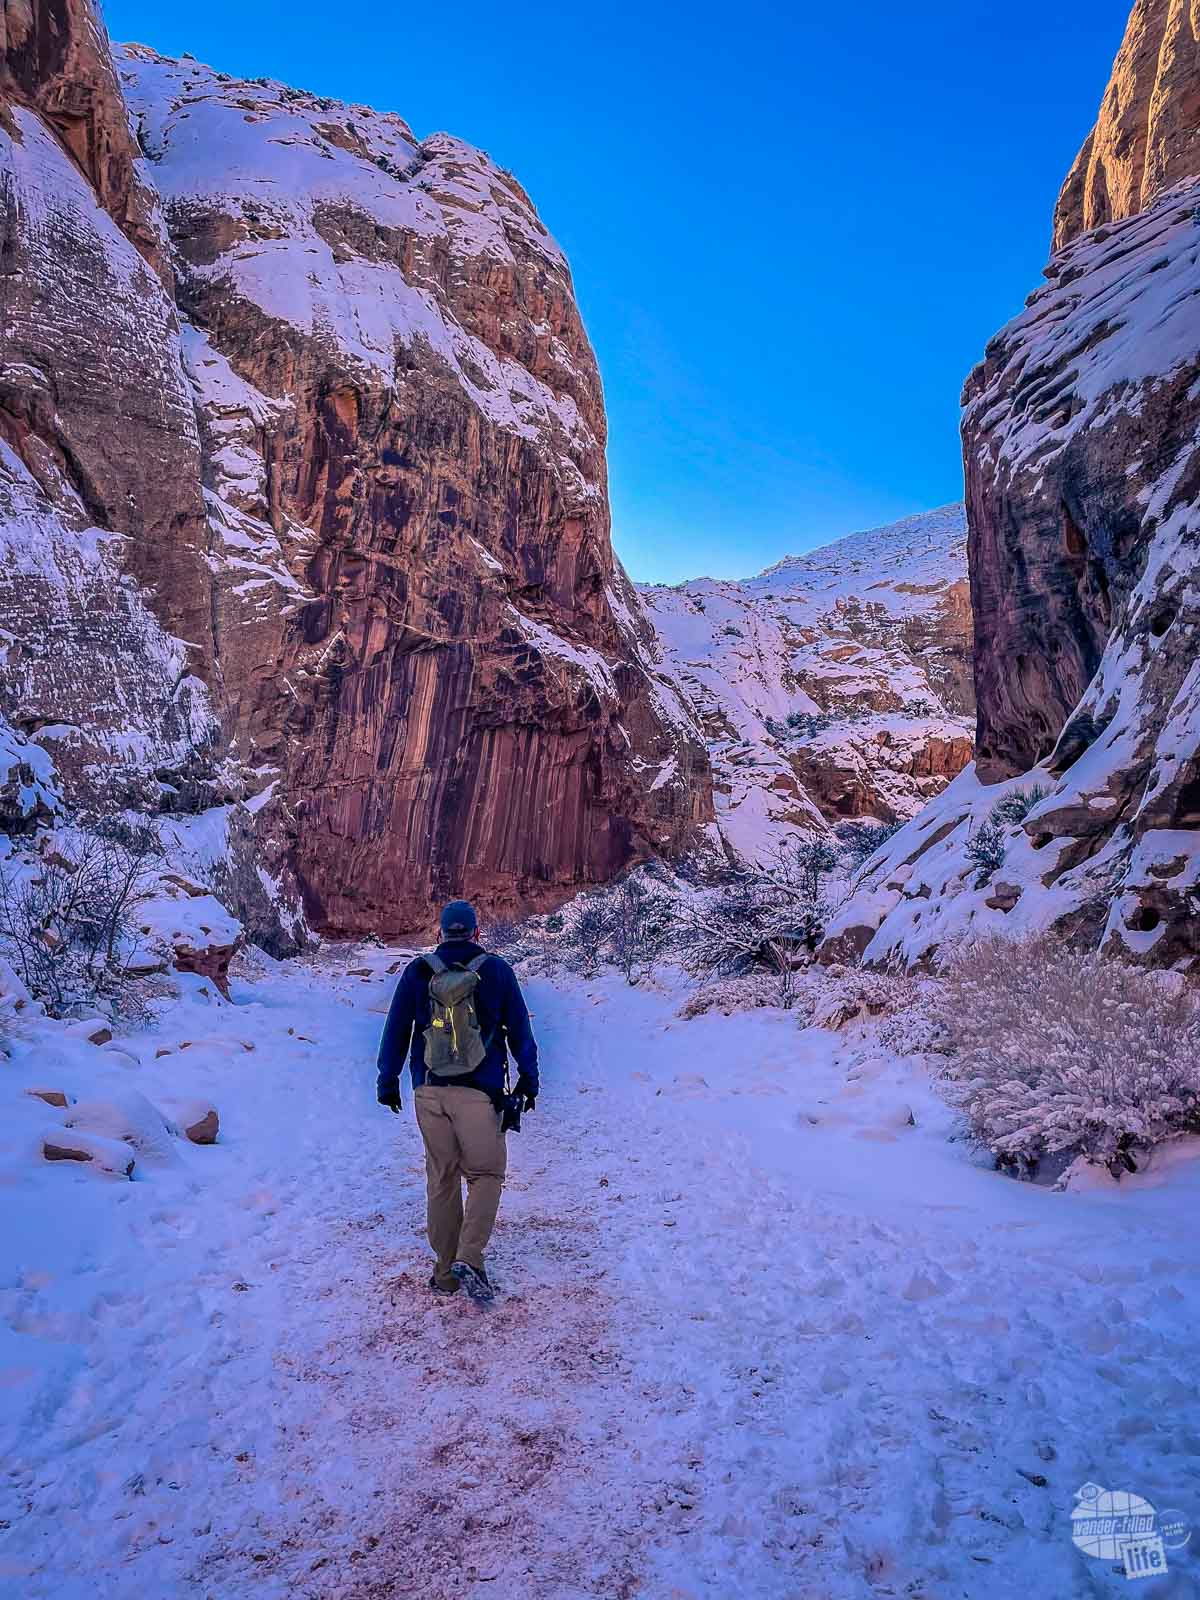 Grant hiking on the Grand Wash Trail in Capitol Reef National Park in the winter.